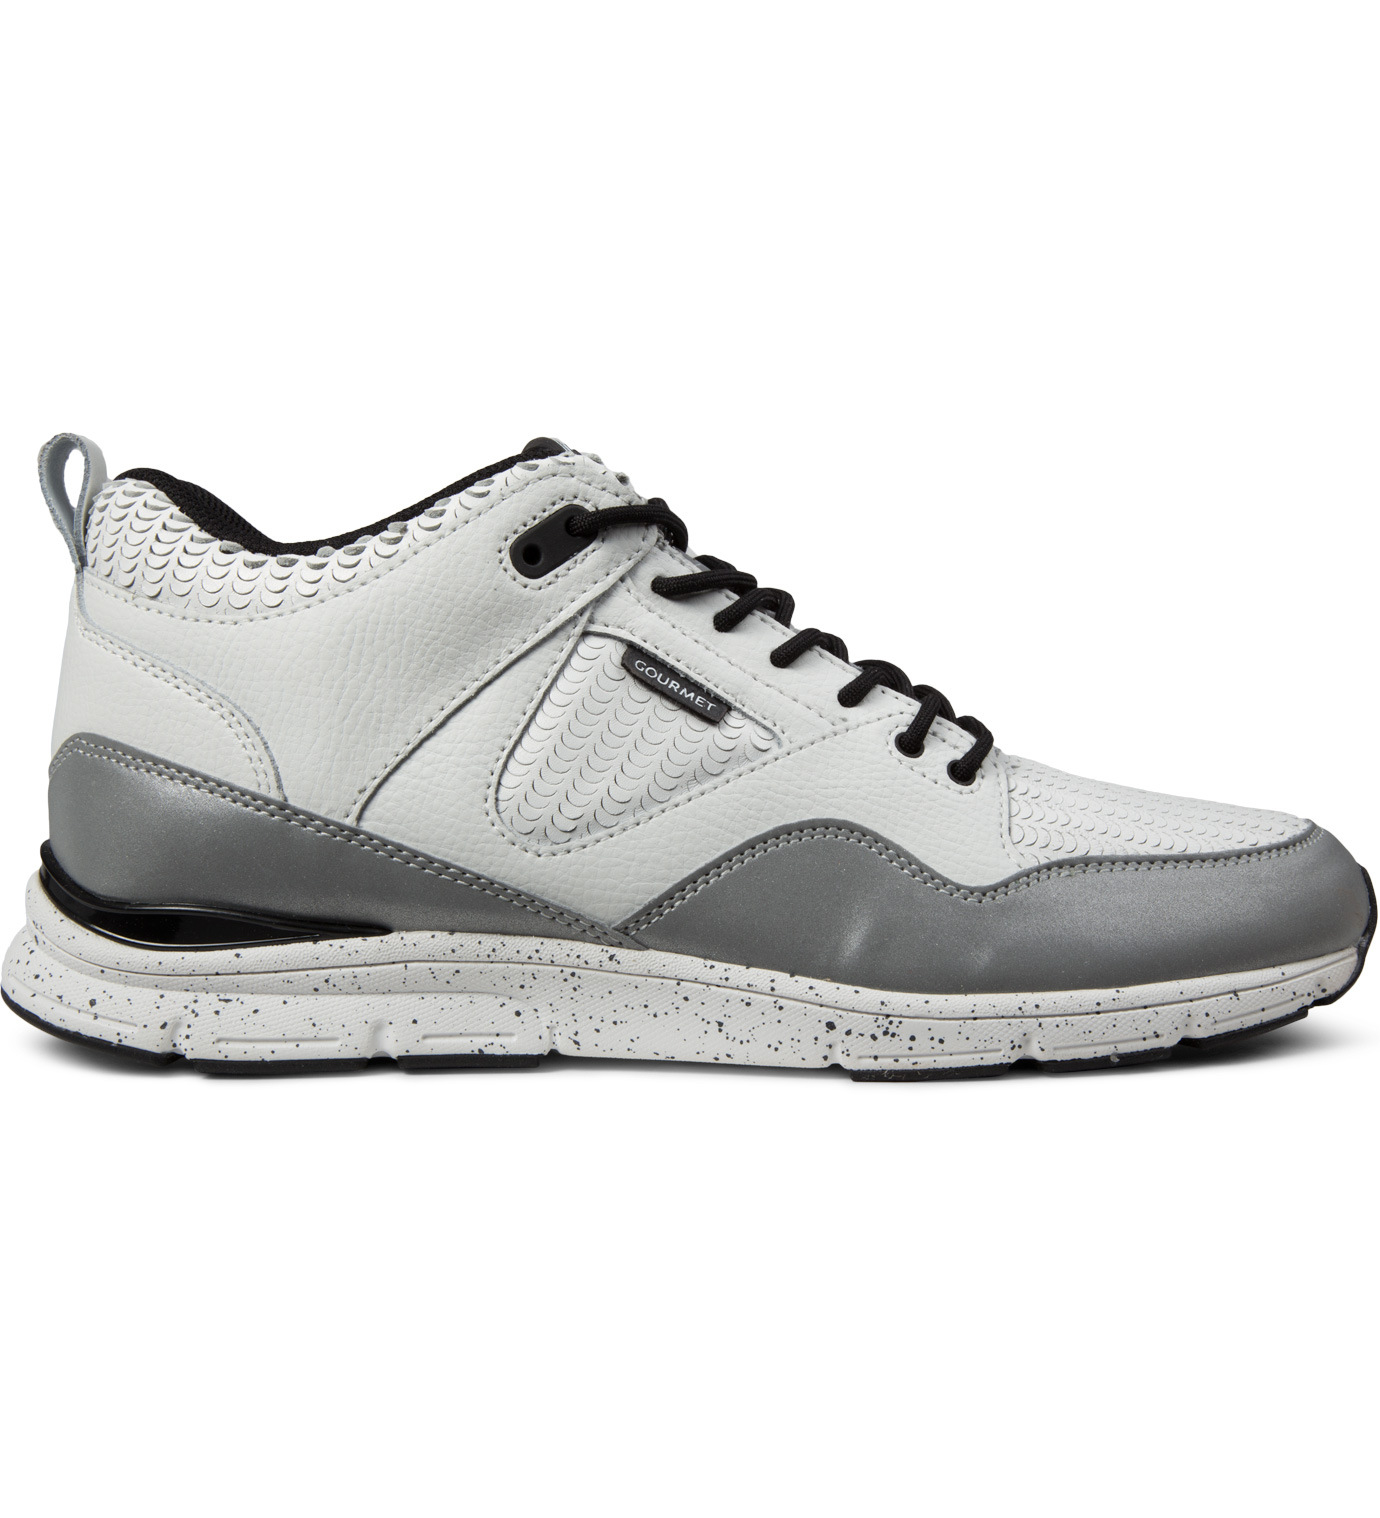 gourmet white metallic the 35 lite lx shoes in gray for